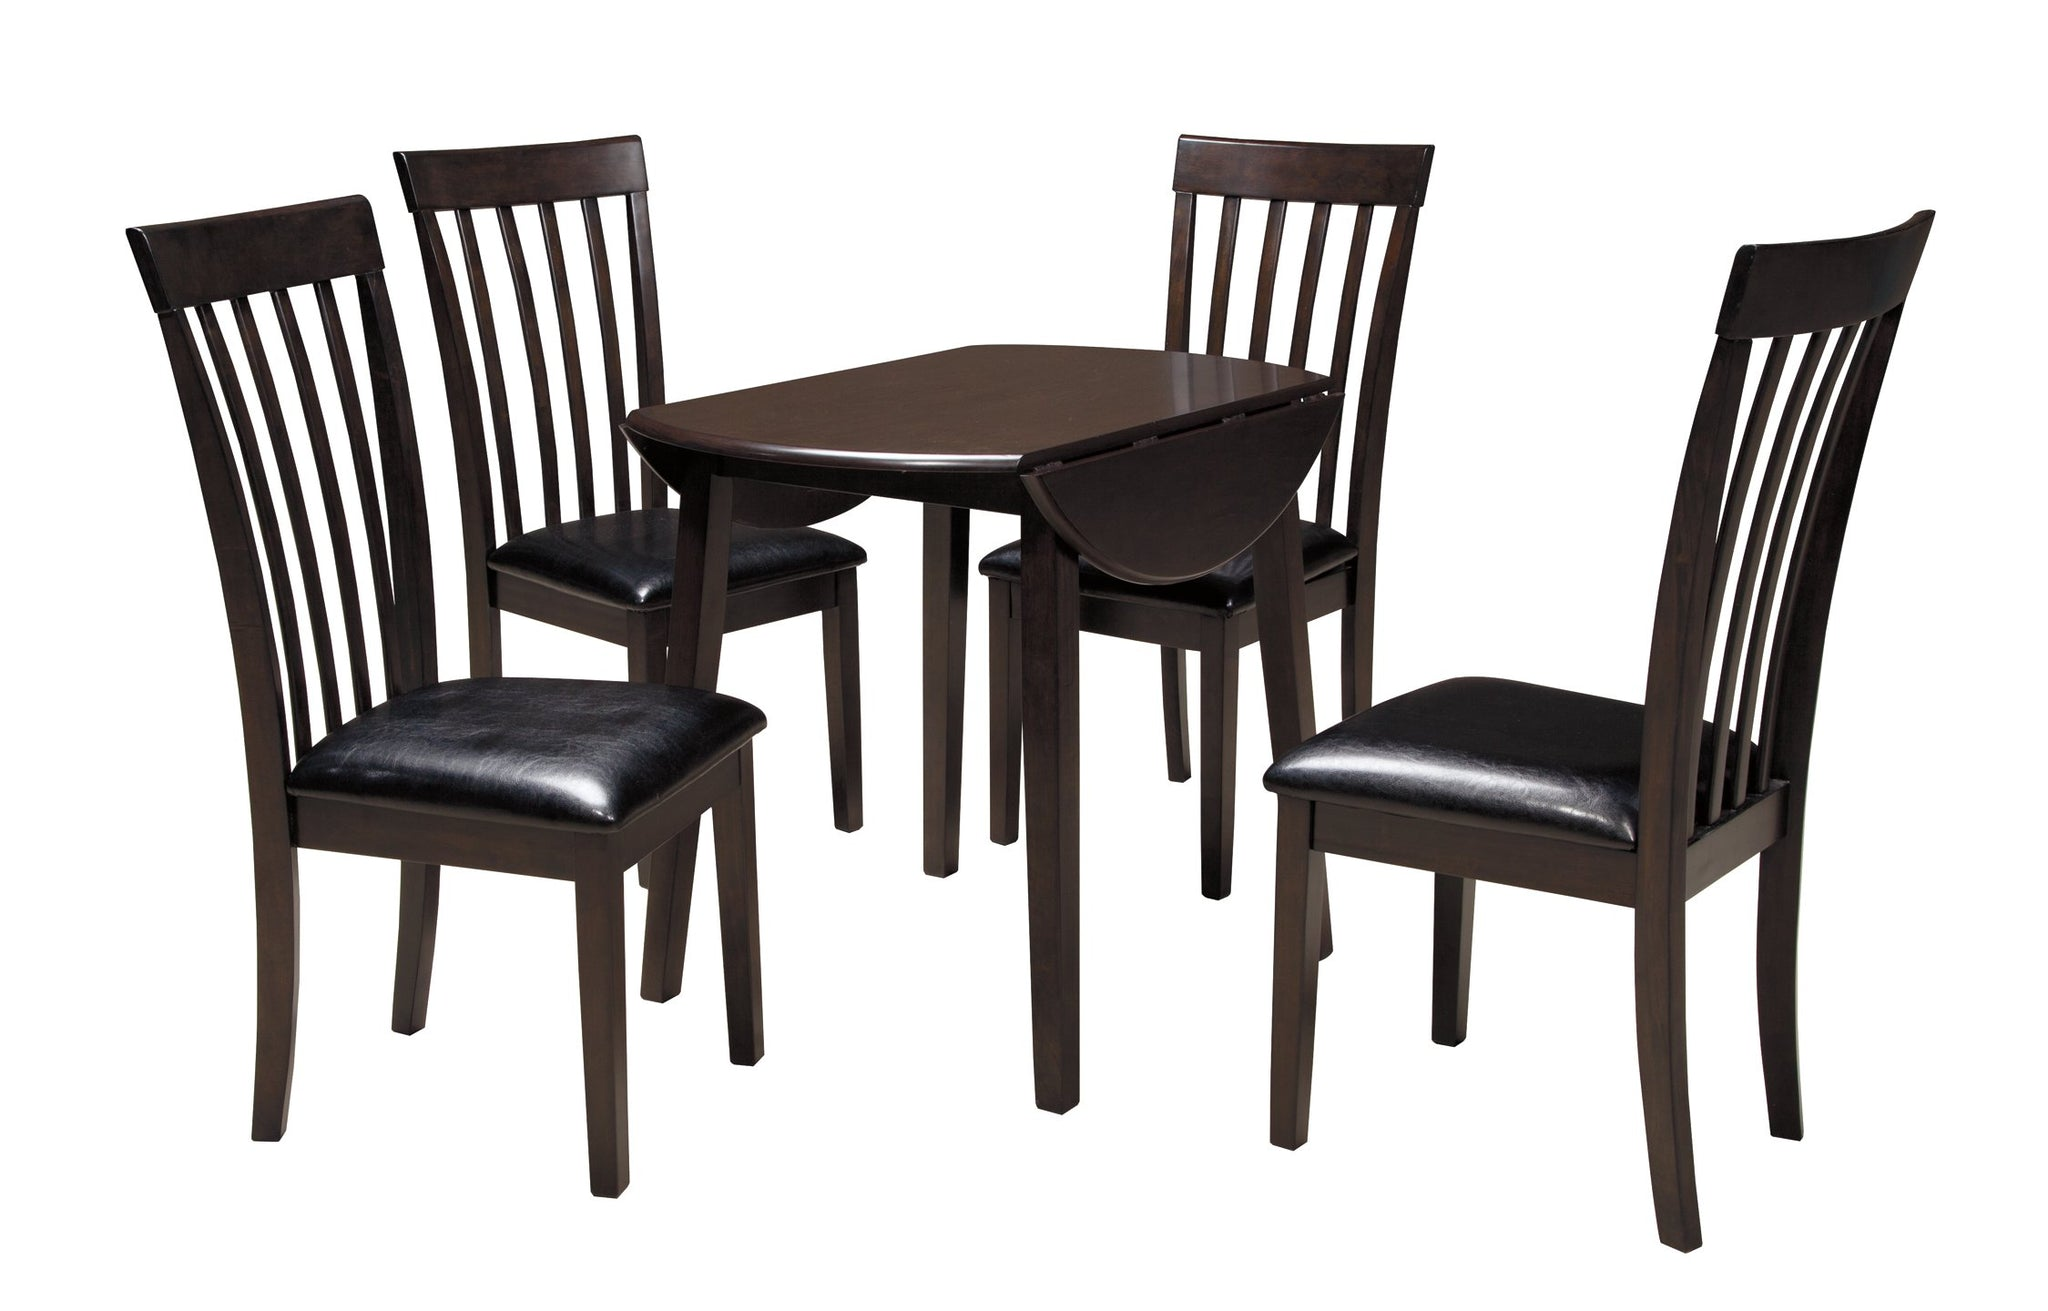 Hammis Signature Design 5-Piece Dining Room Set